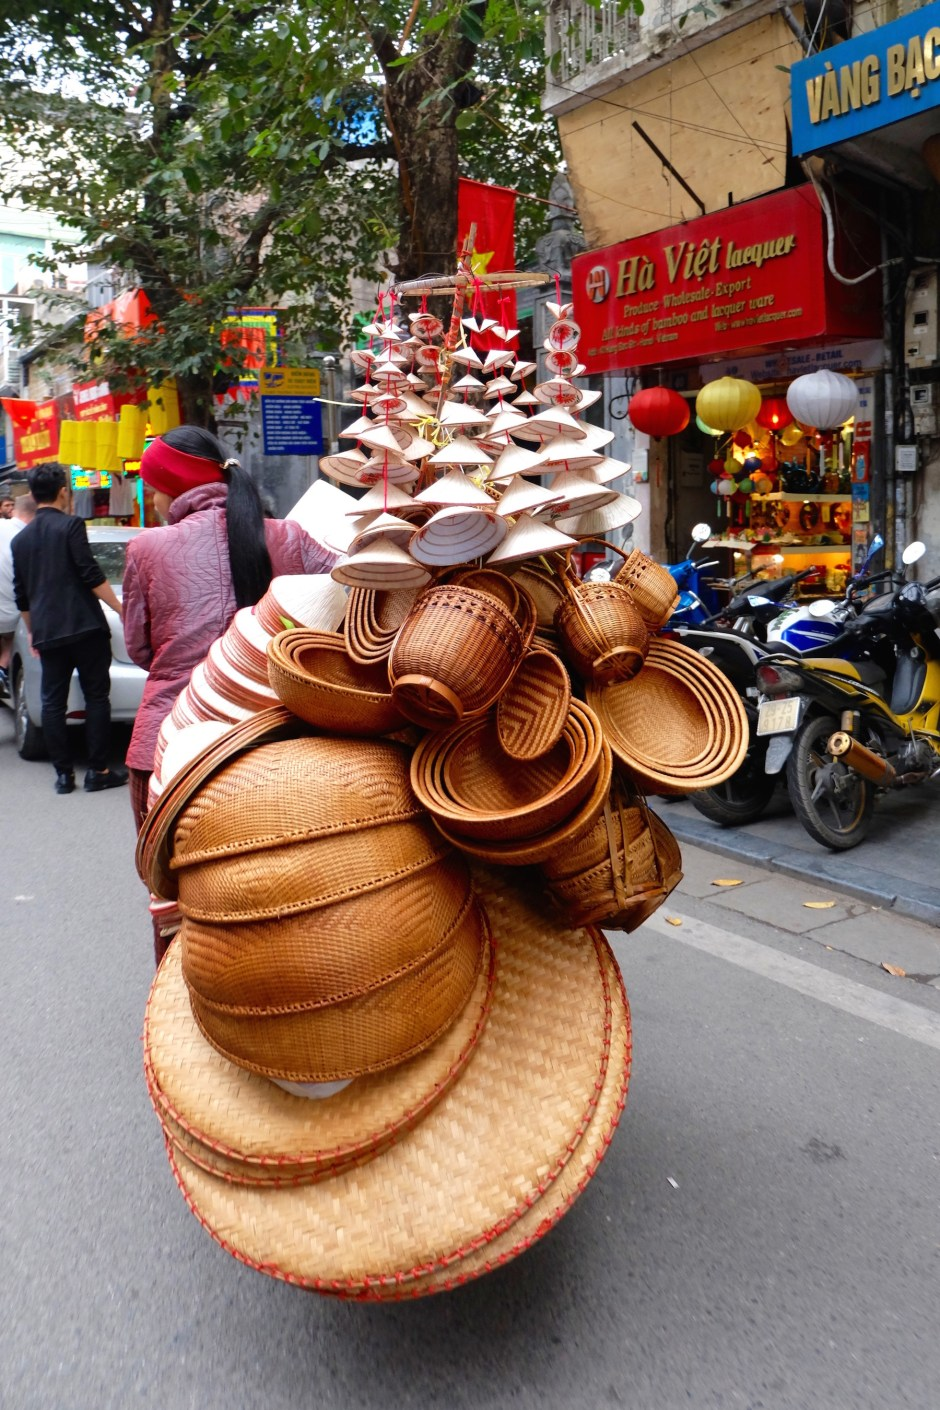 Vendor in Hanoi Street